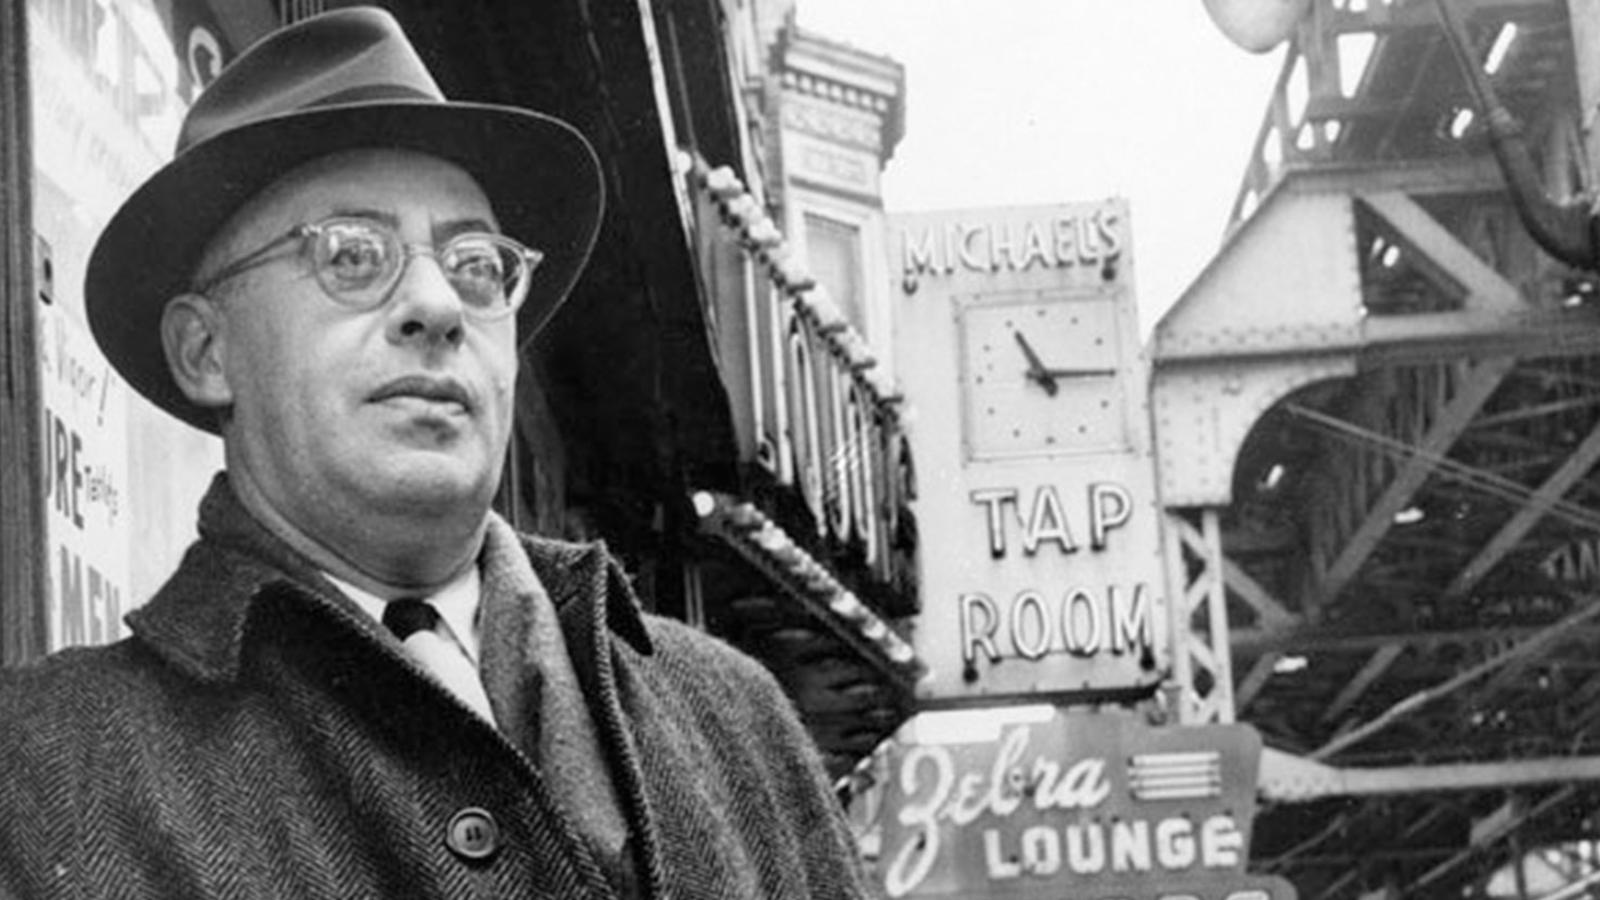 Saul Alinsky pictured on a street on Chicago south side, Feb. 16, 1966 Image: Washington Examiner